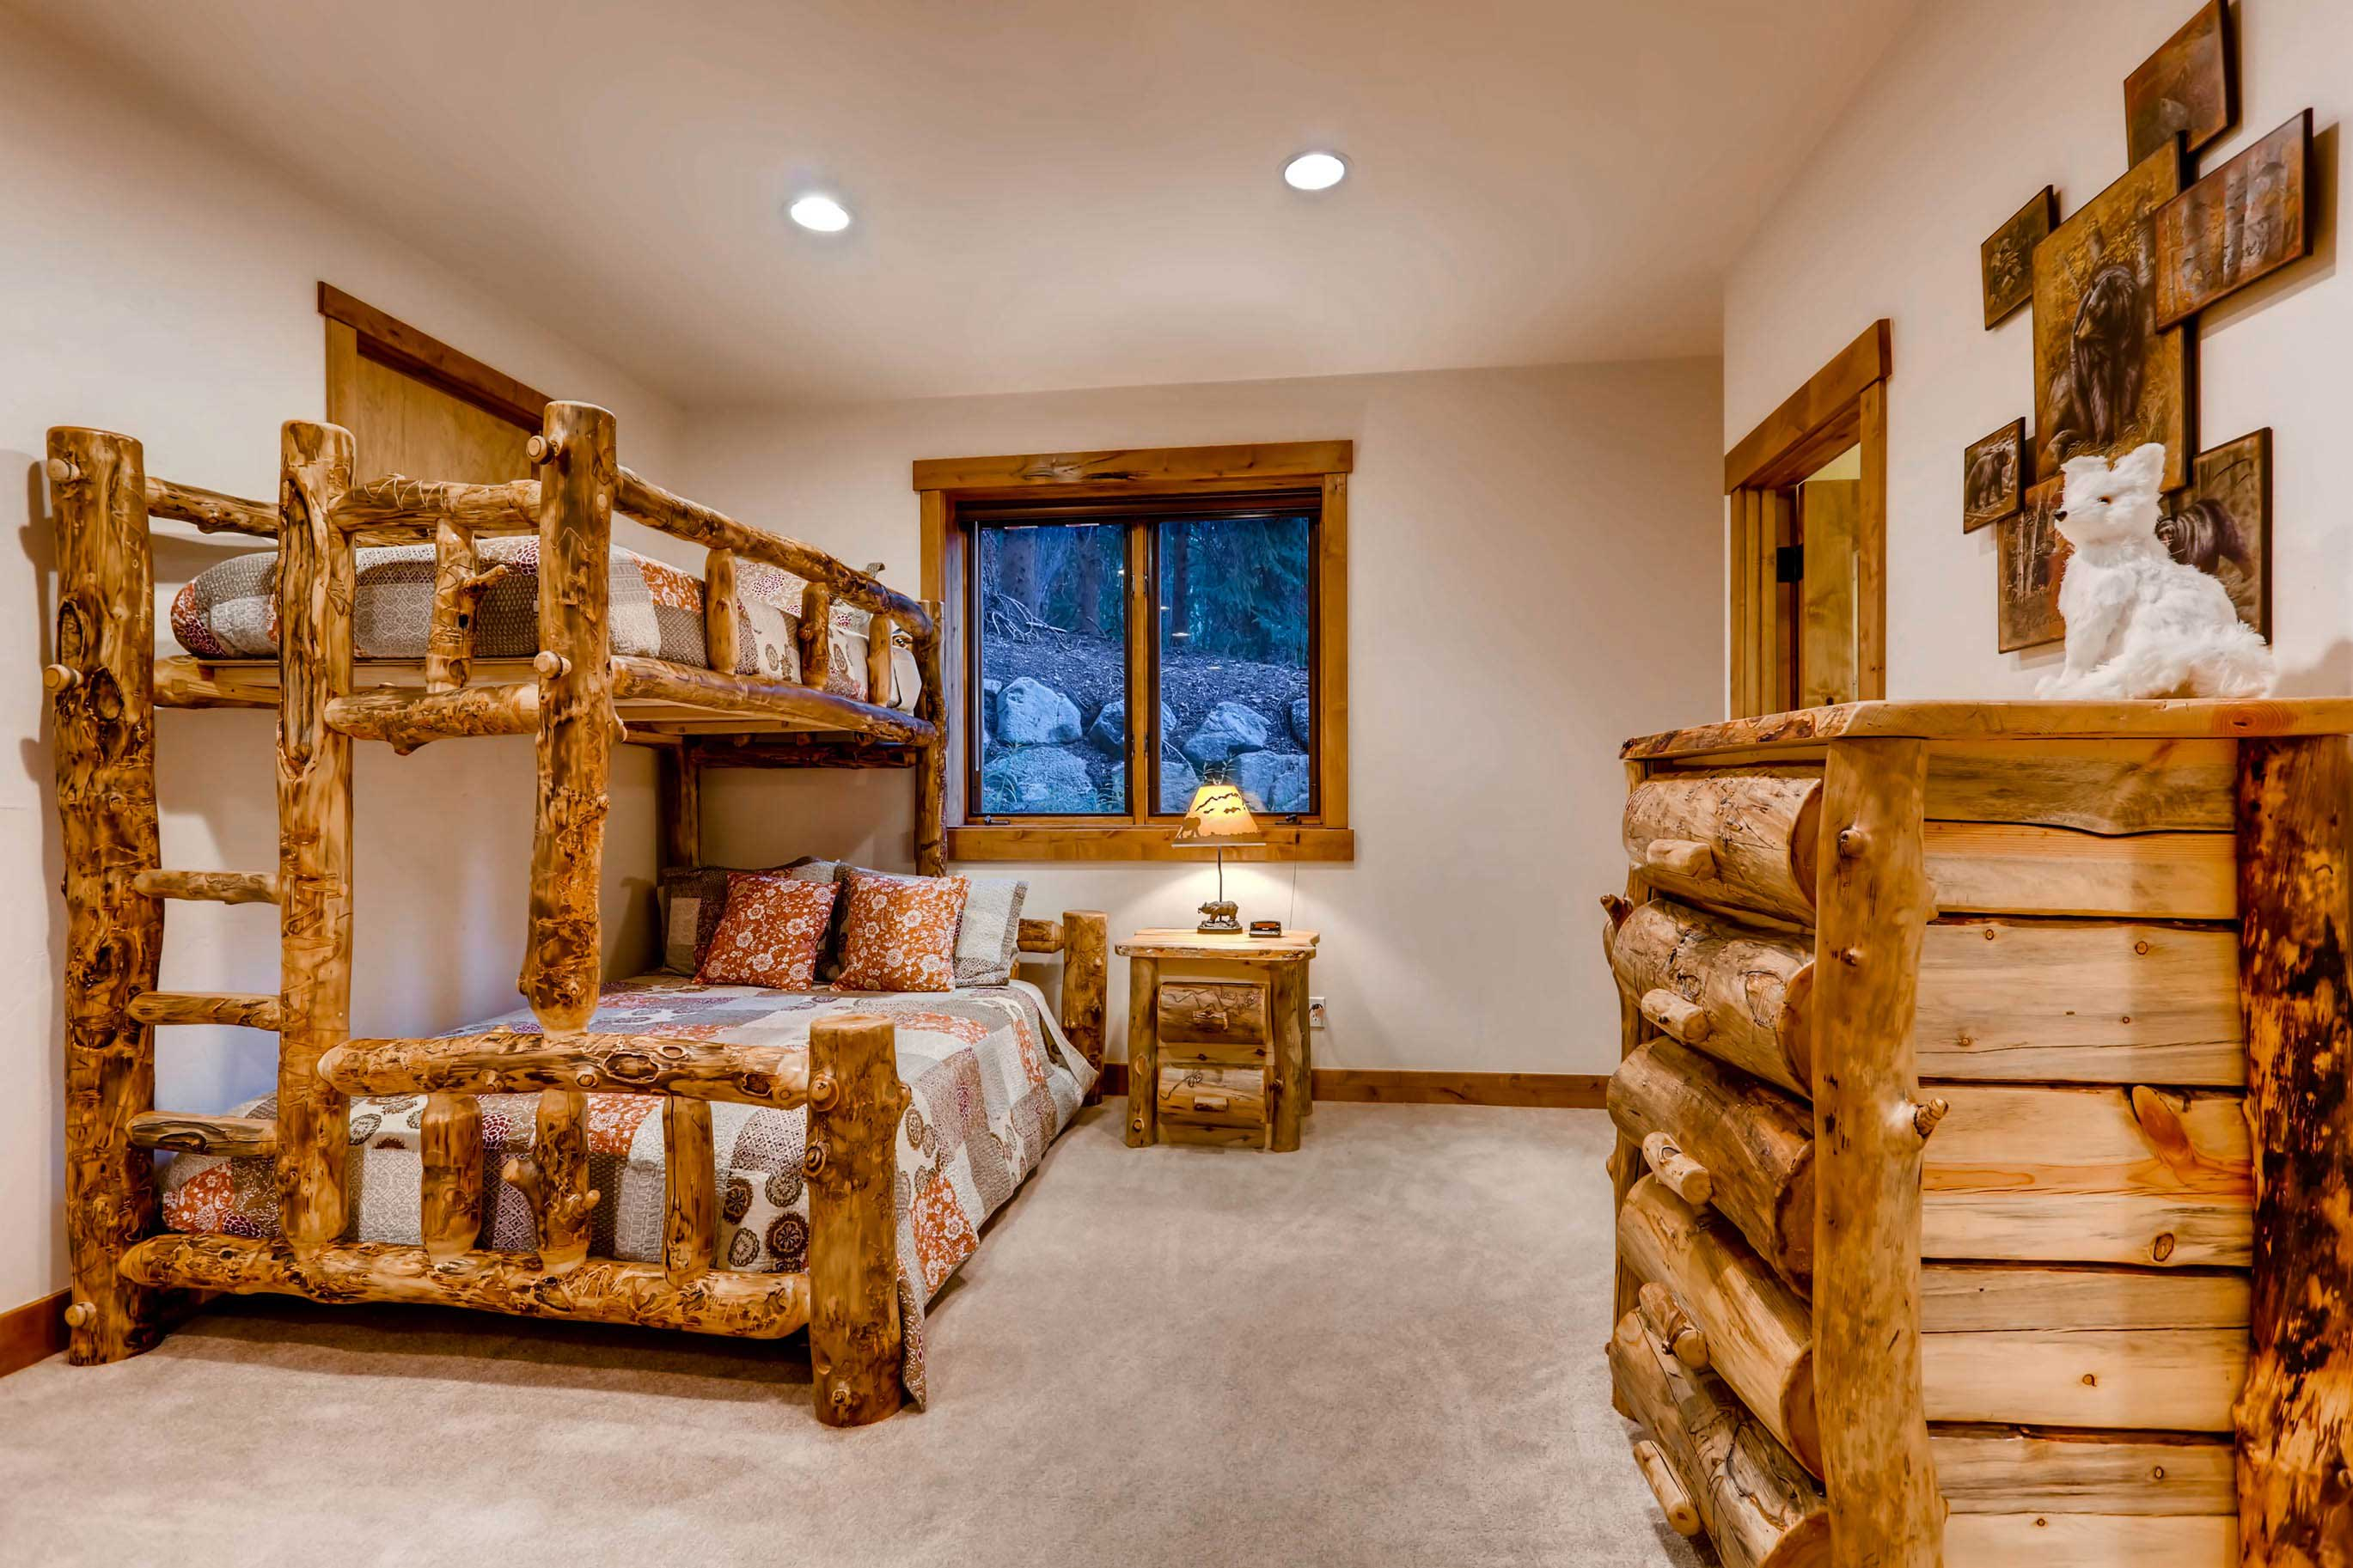 Additional sleeping arrangements are available in the basement.